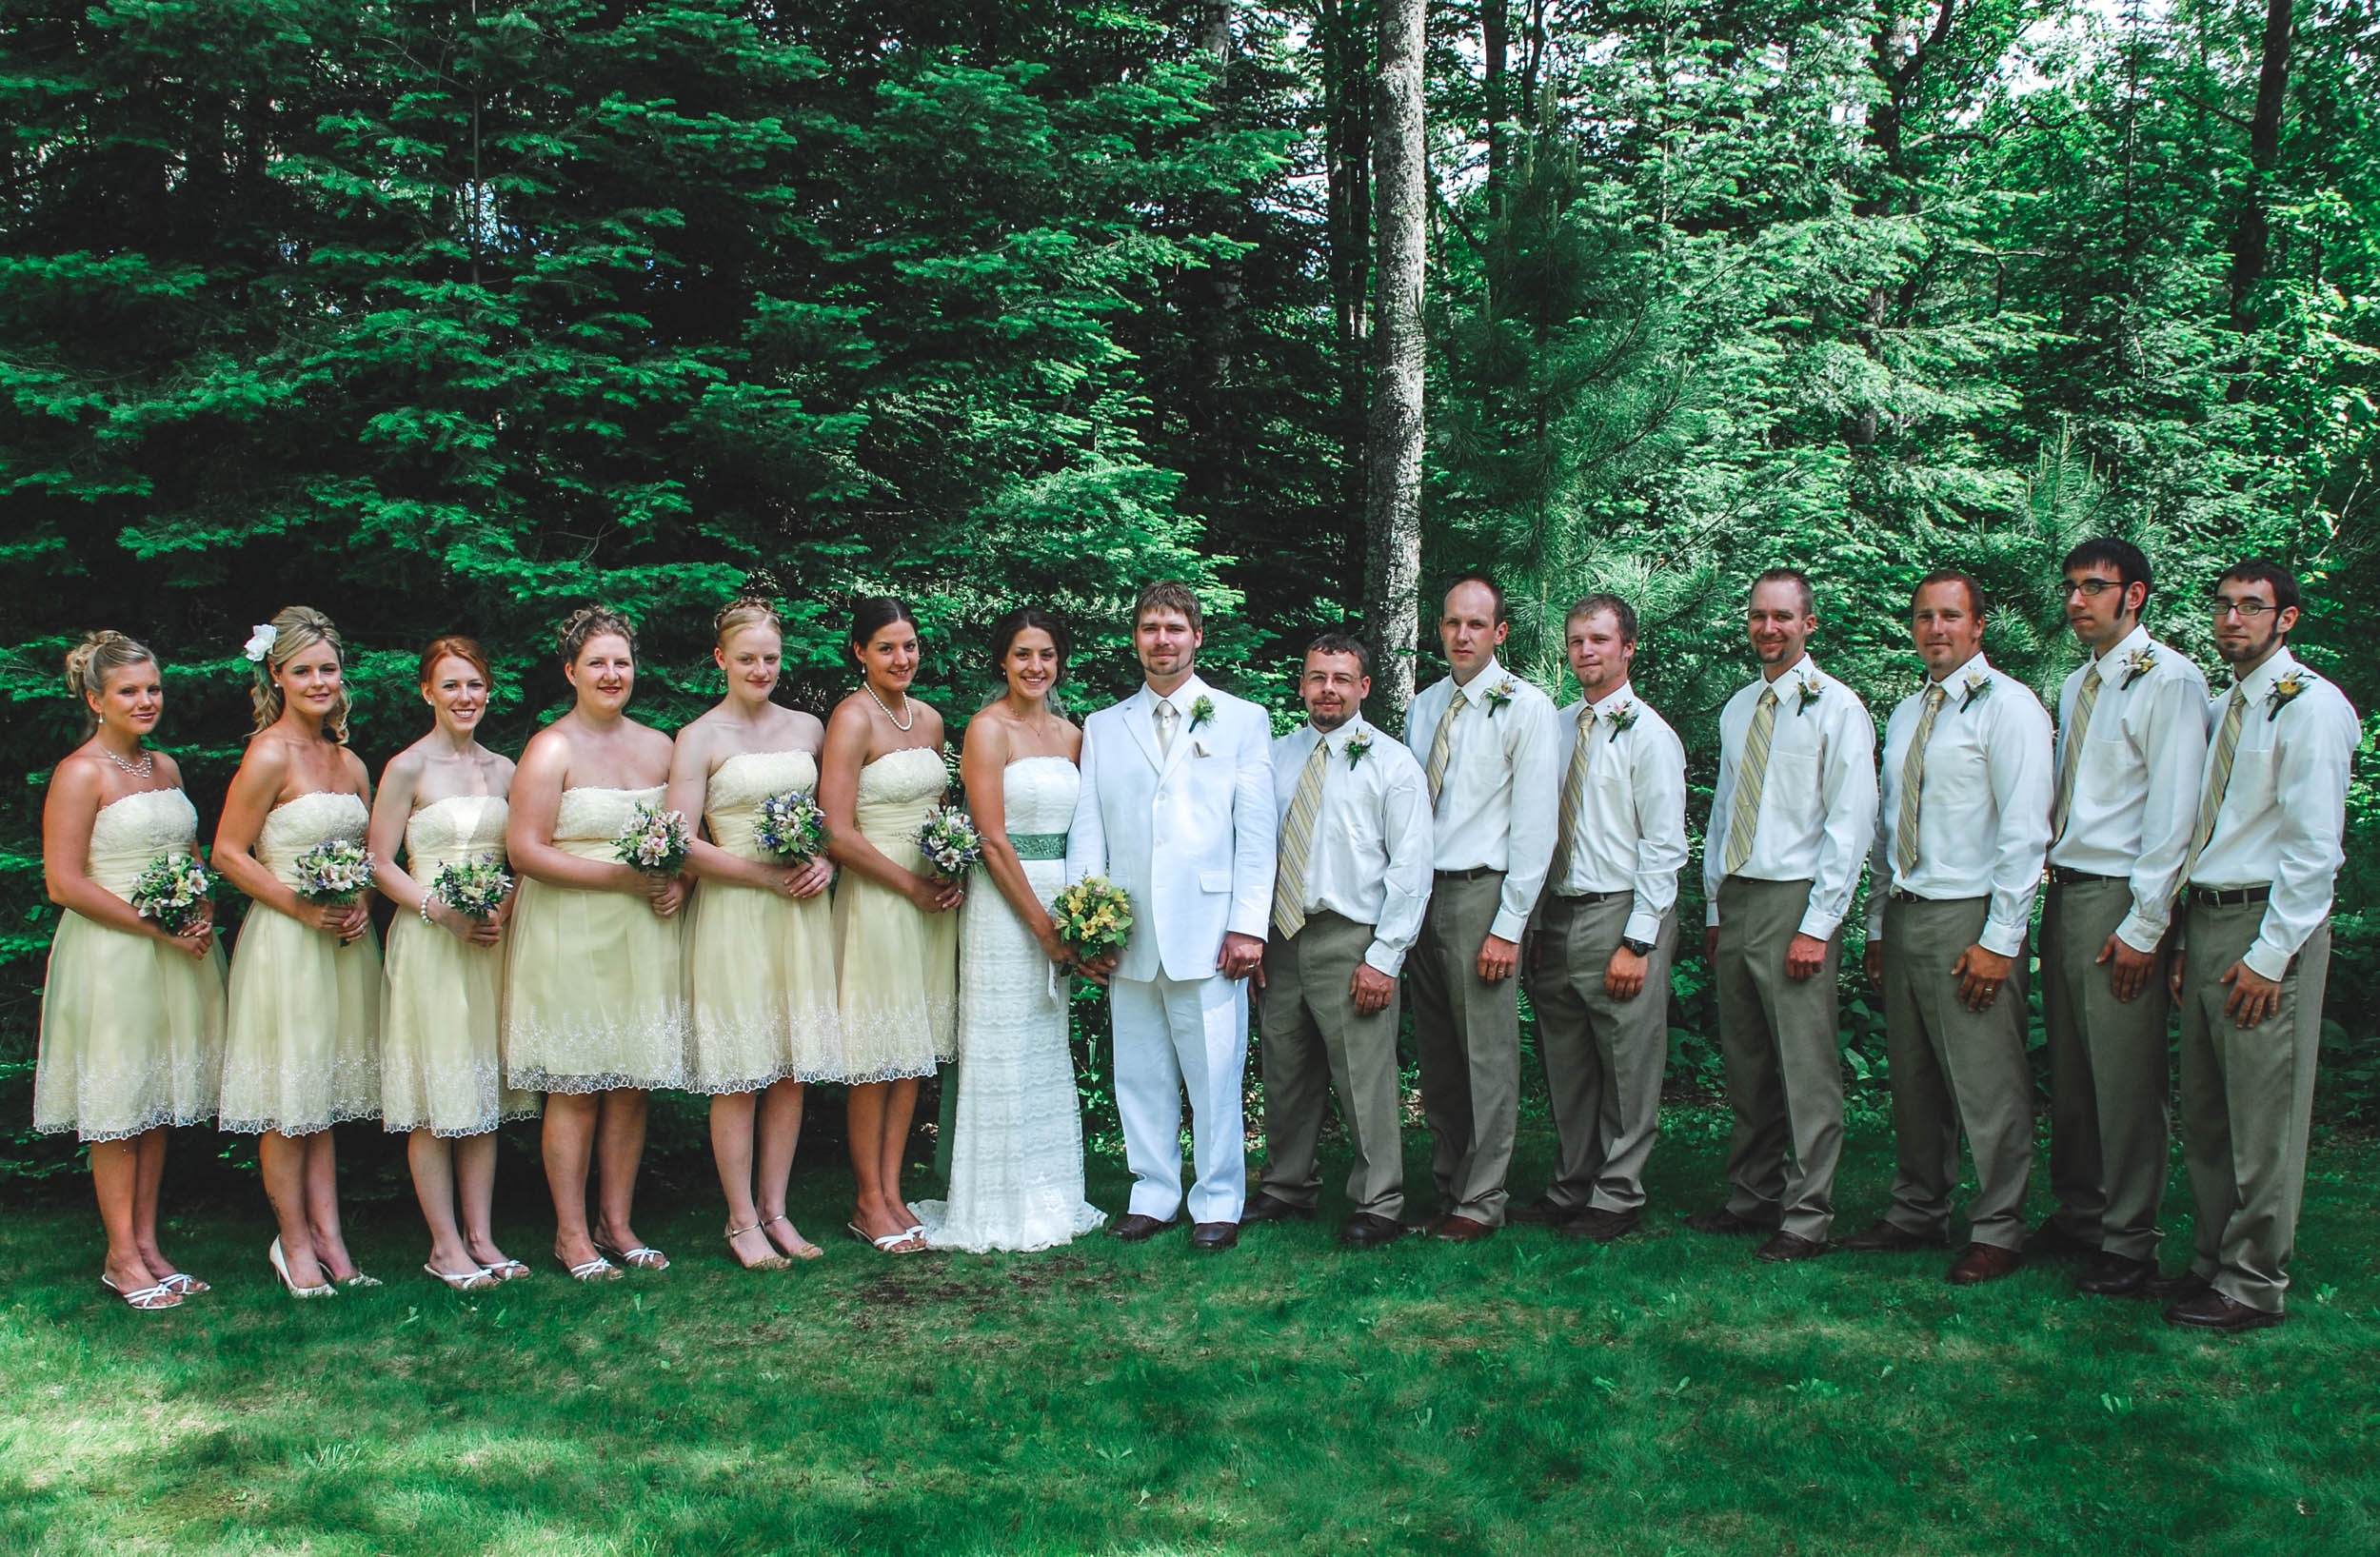 Traditional wedding party pose after backyard Wisconsin ceremony